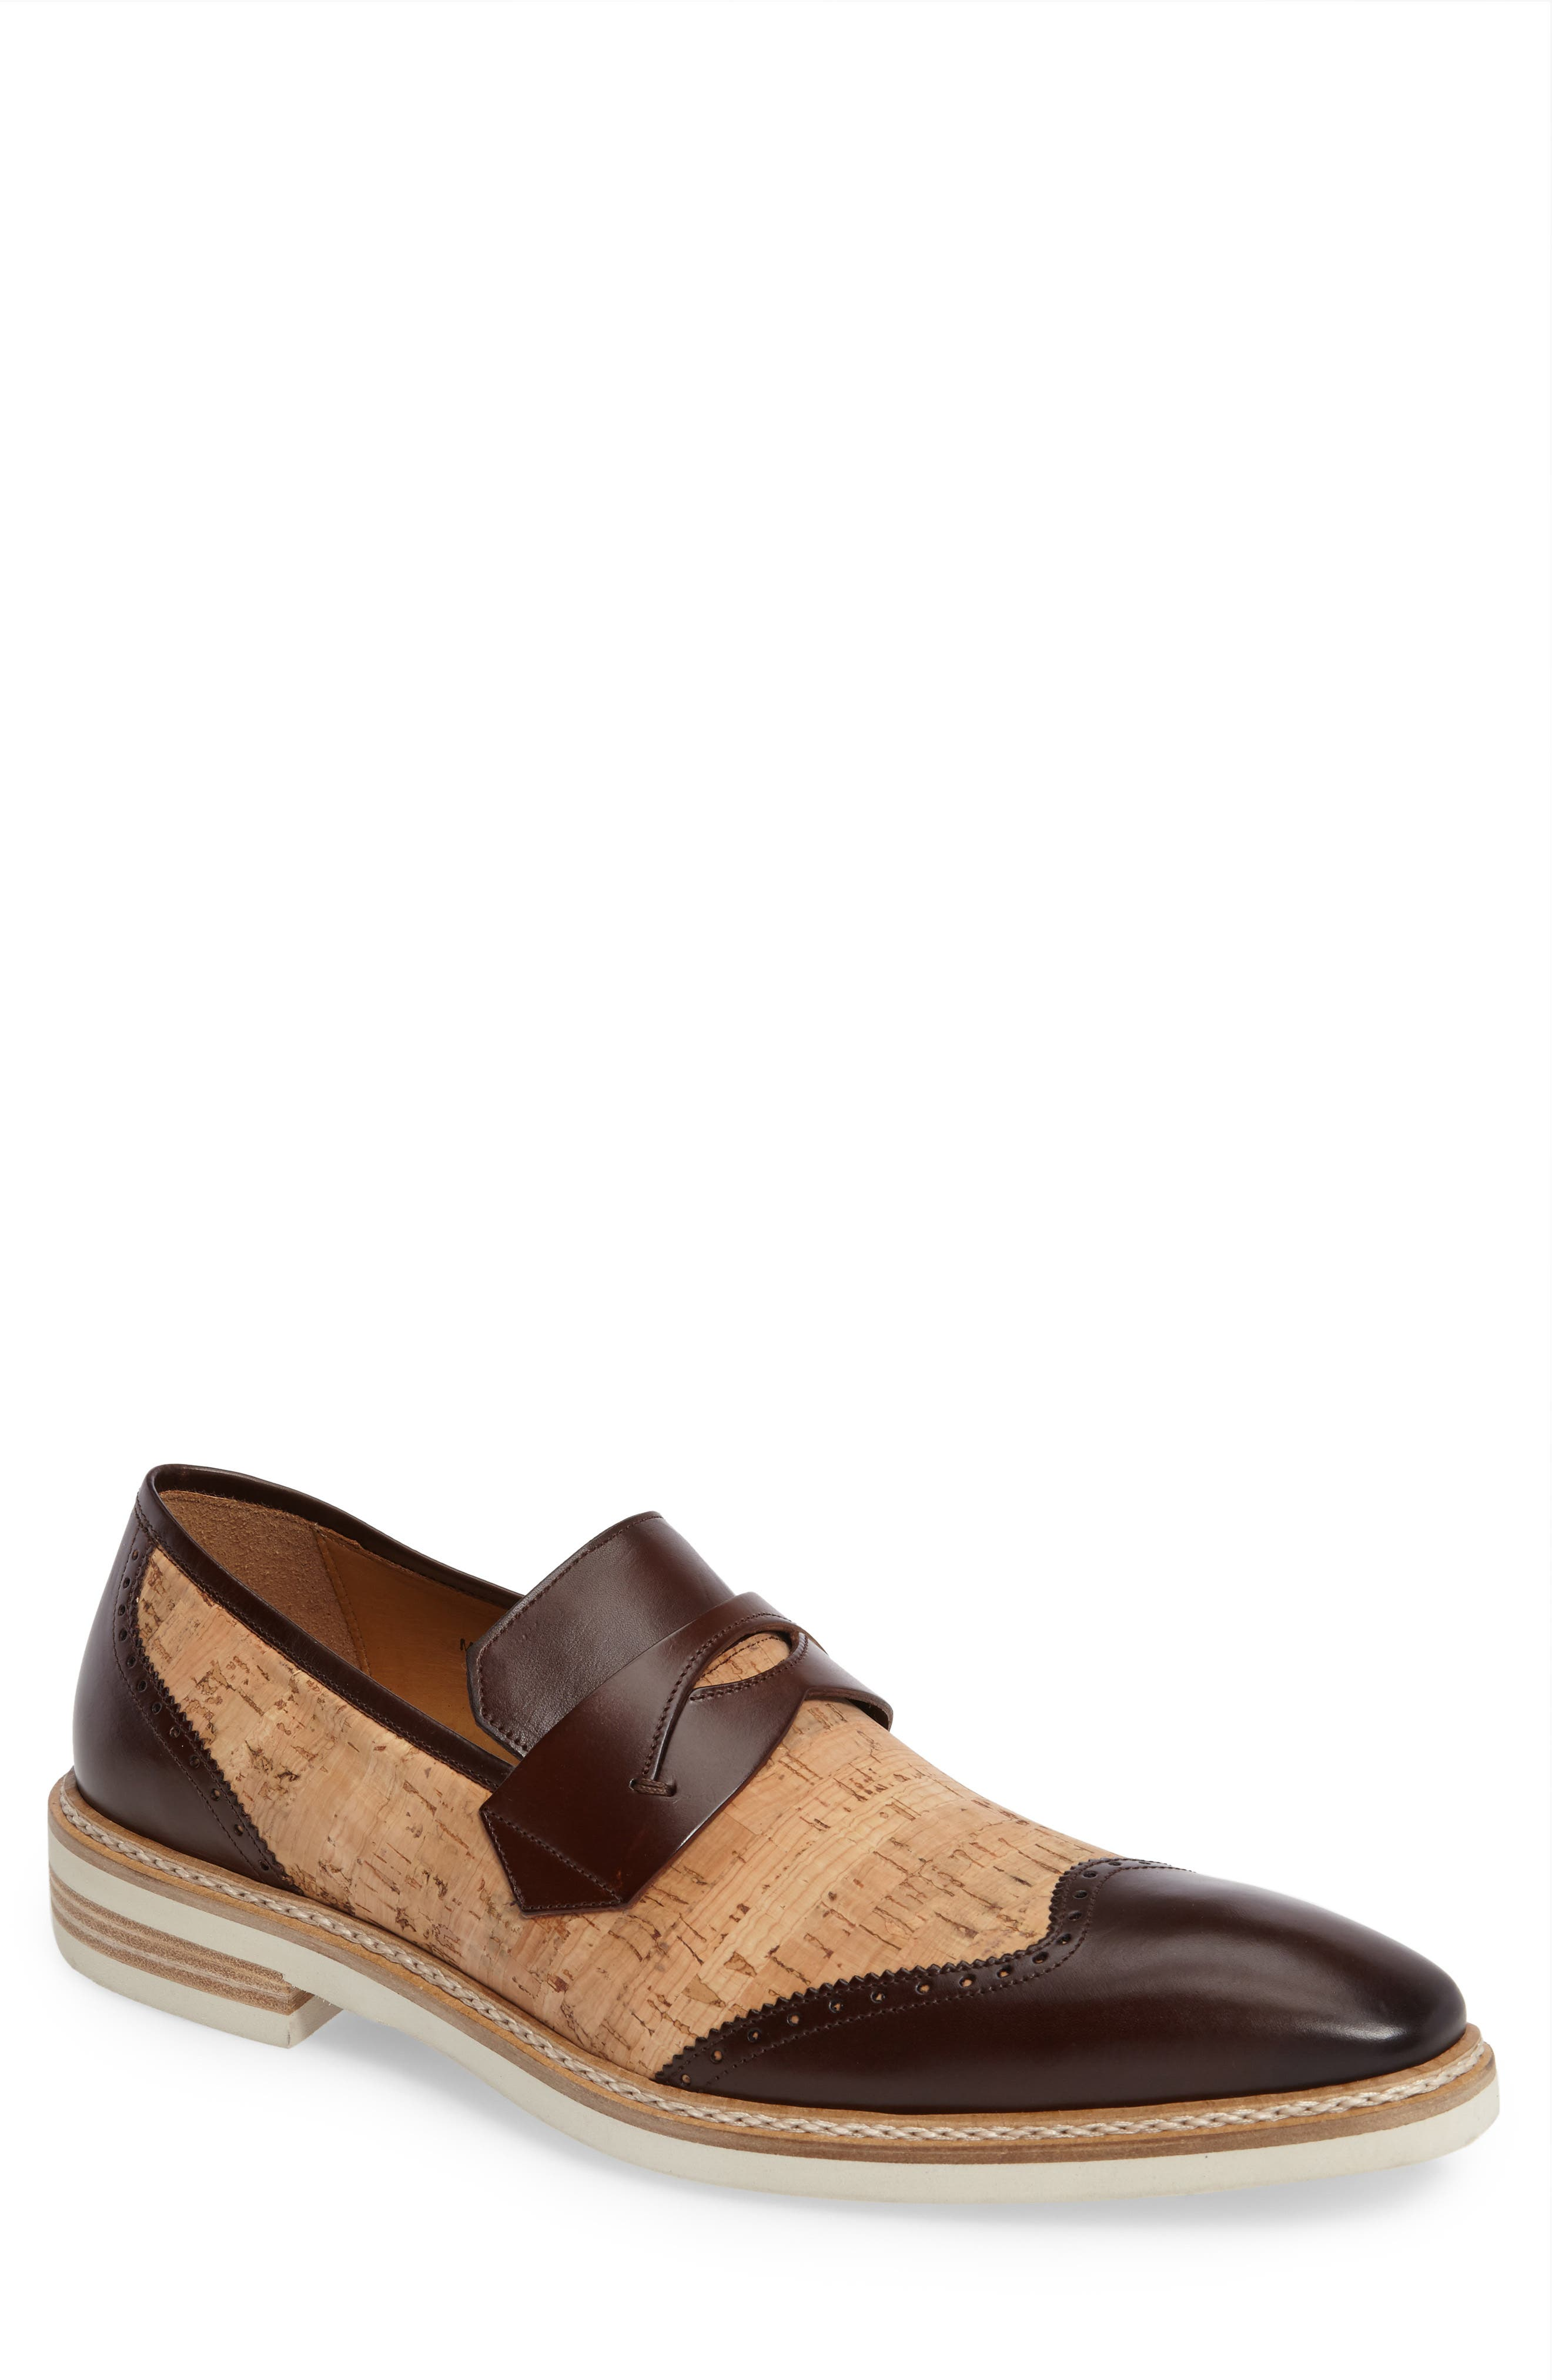 Redi Venetian Loafer, Main, color, 200